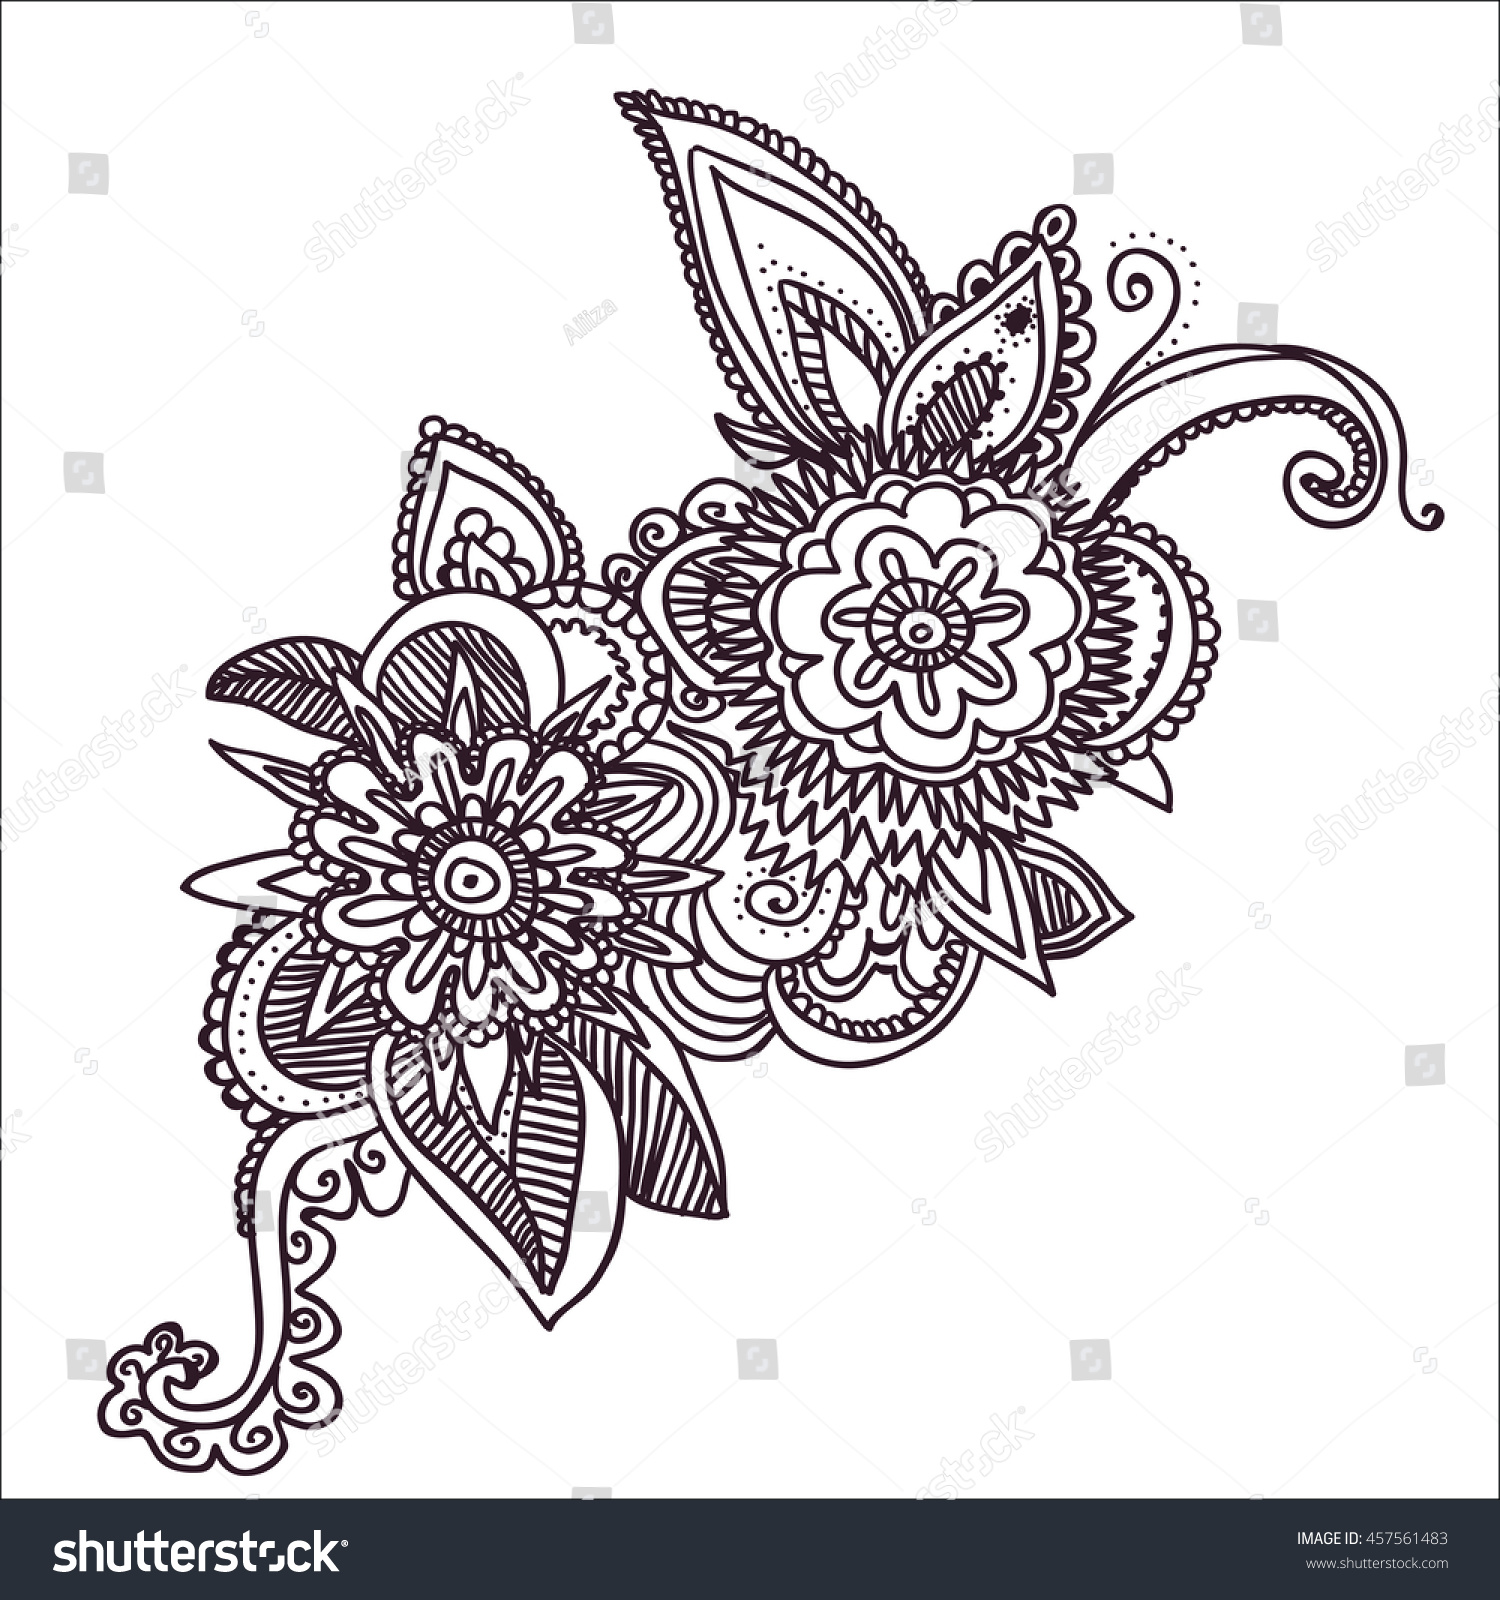 Black And White Original Hand Draw Line Art Indian Flower Design